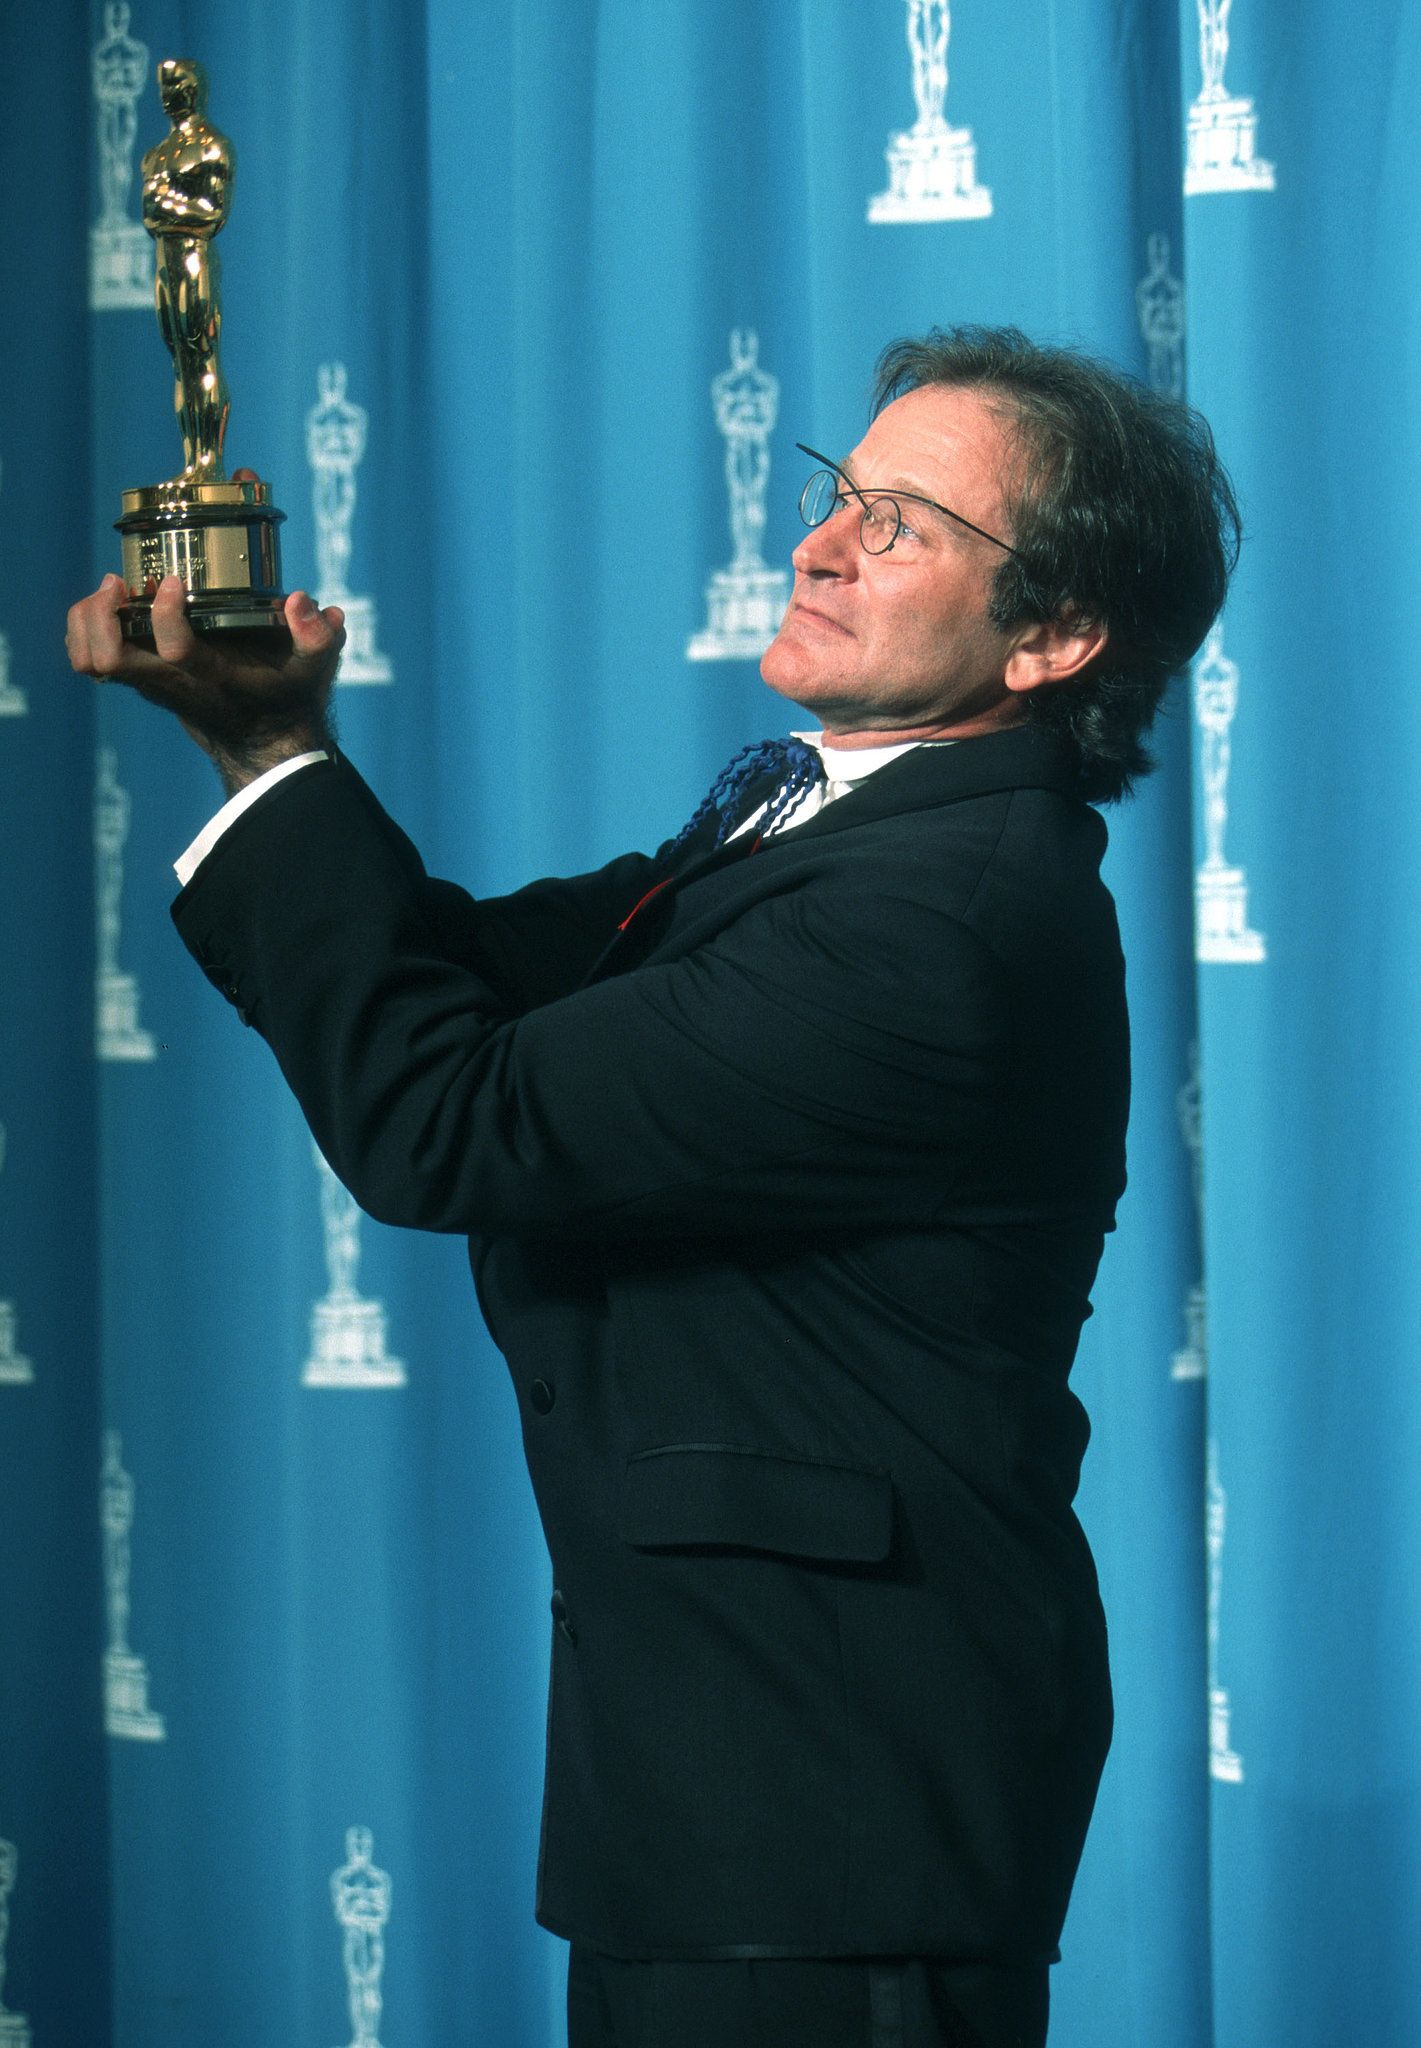 All the Fun Vintage Pictures From the Oscars Press Room